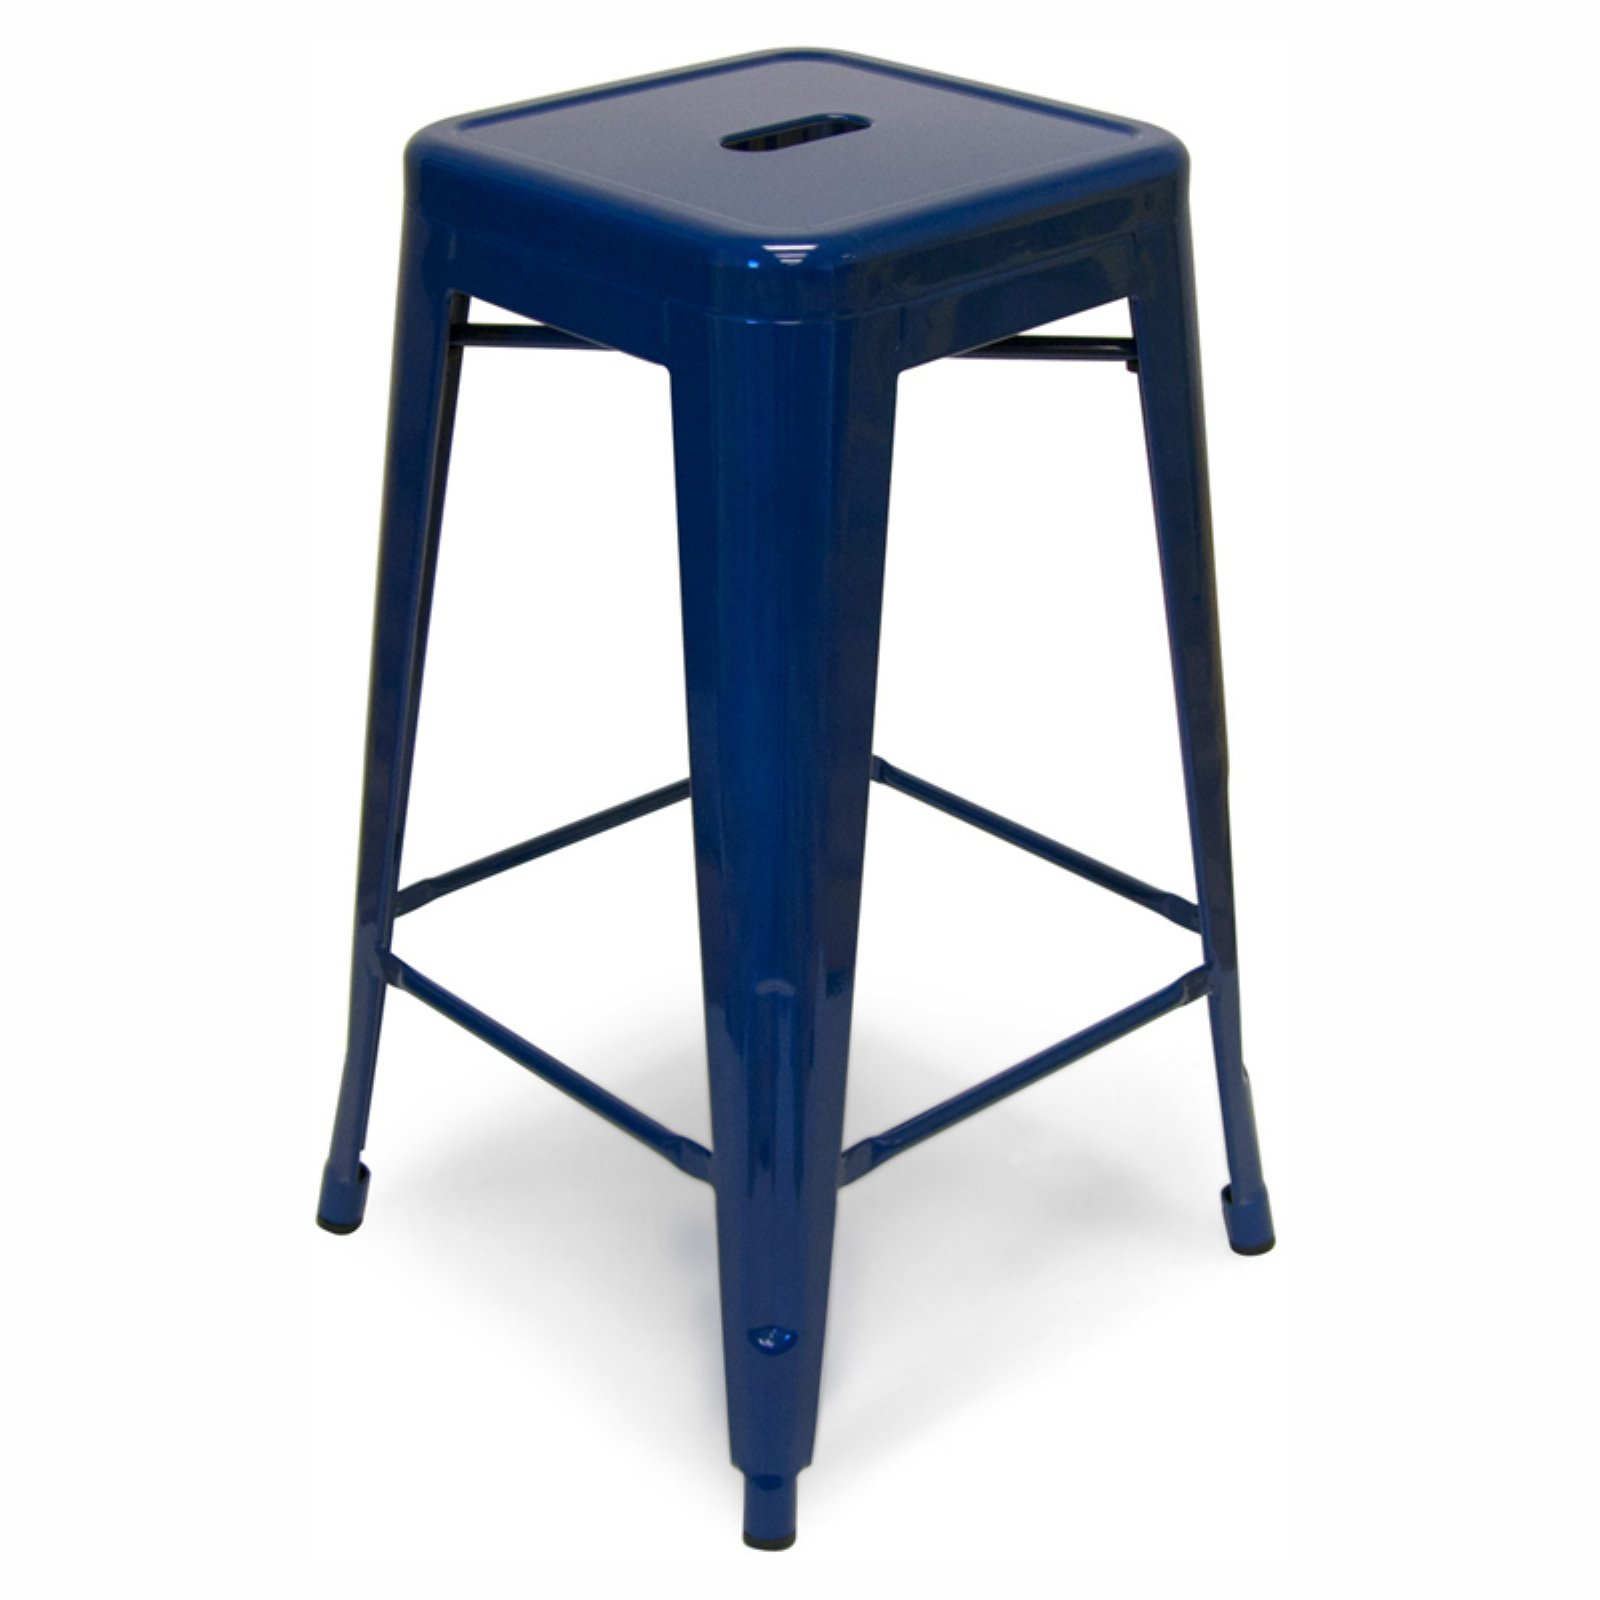 Aeon Furniture Galaxy Counter Height Bar Stool - Set of 2